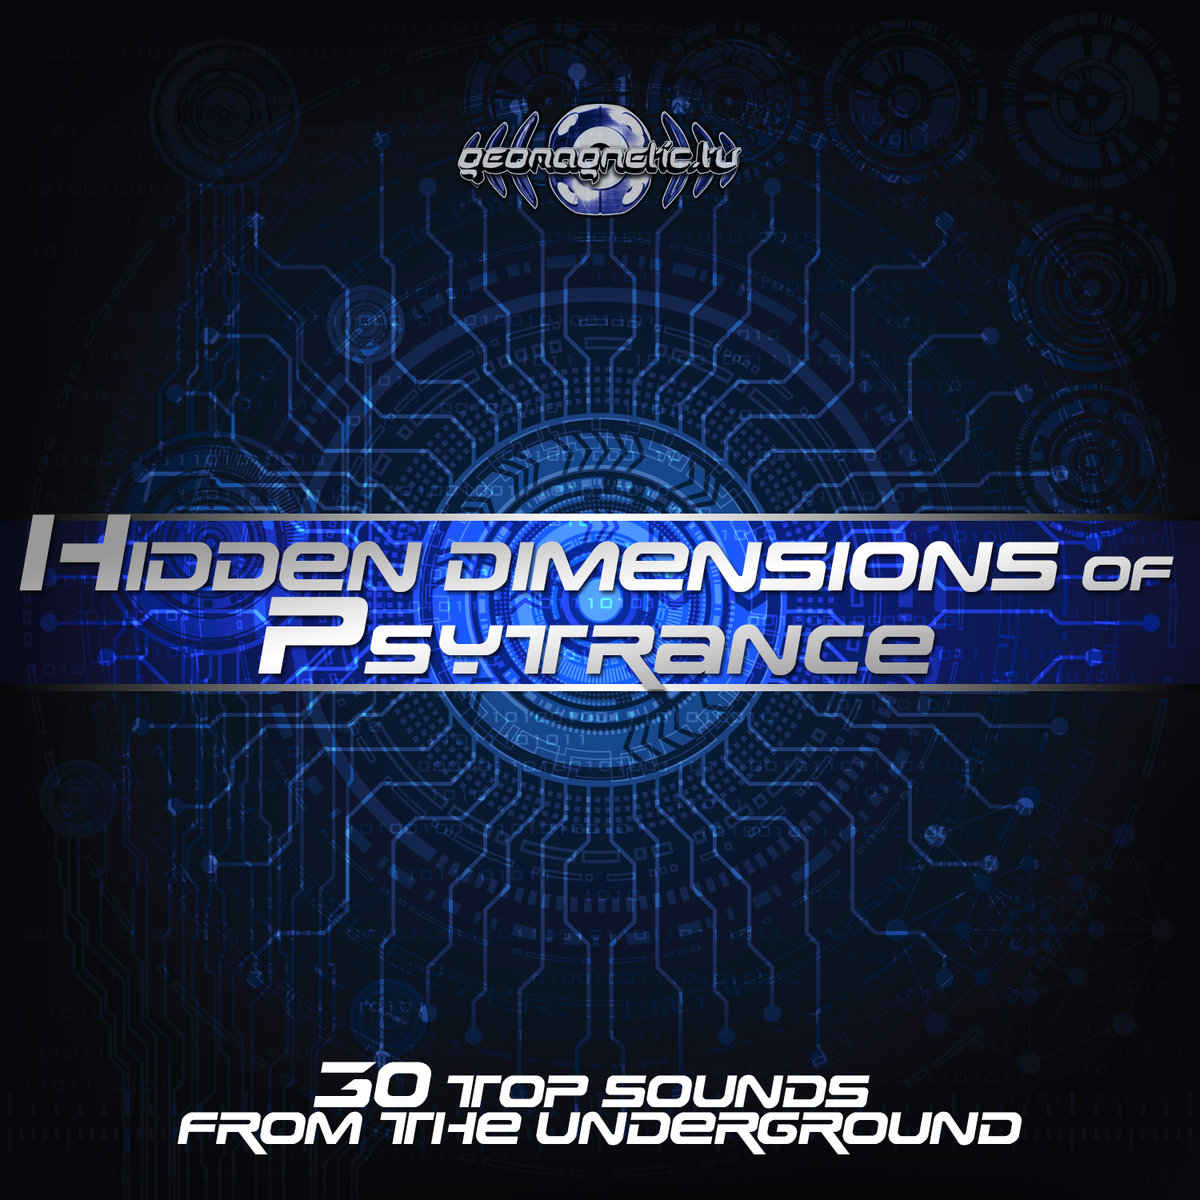 Dahaka & Whatevaman - Mystery of Mind @ 'Various Artists - Hidden Dimensions of Psytrance (30 Top Sounds From The Underground)' album (electronic, goa)